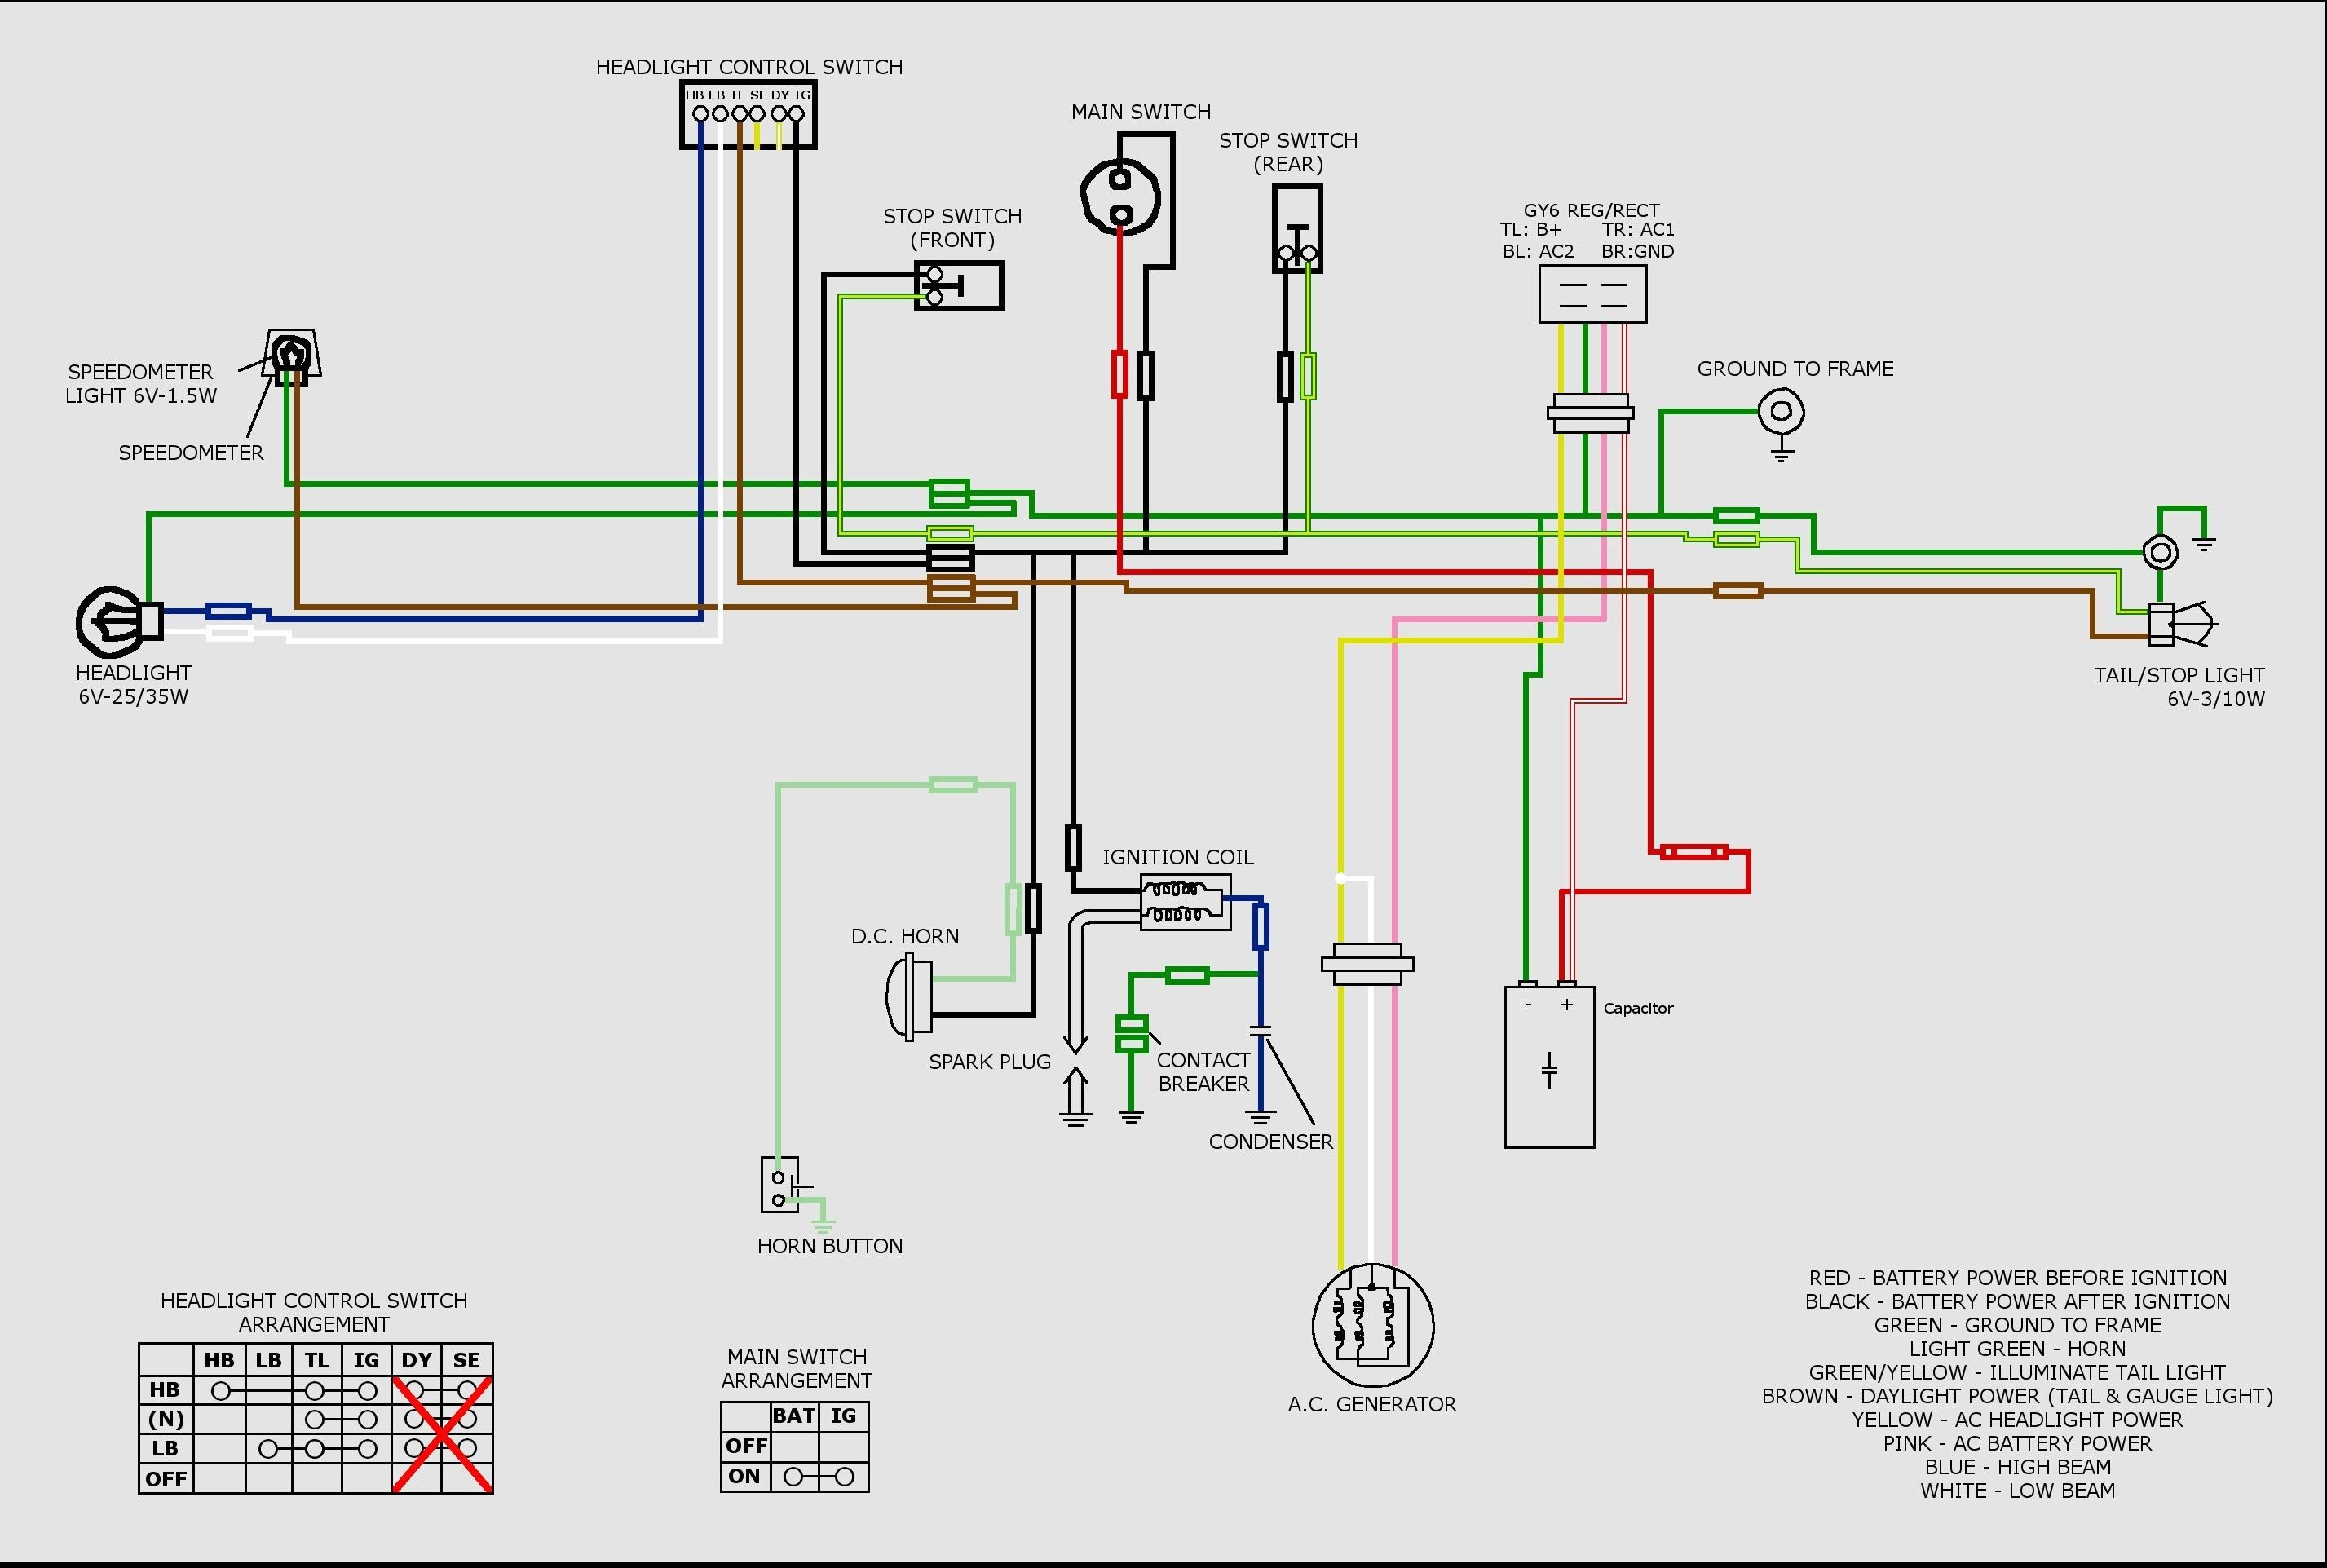 Wiring Diagram for 110cc Chinese atv Gy6 Wiring Diagram Awesome 150cc Gy6 Wiring Diagram within Of Wiring Diagram for 110cc Chinese atv